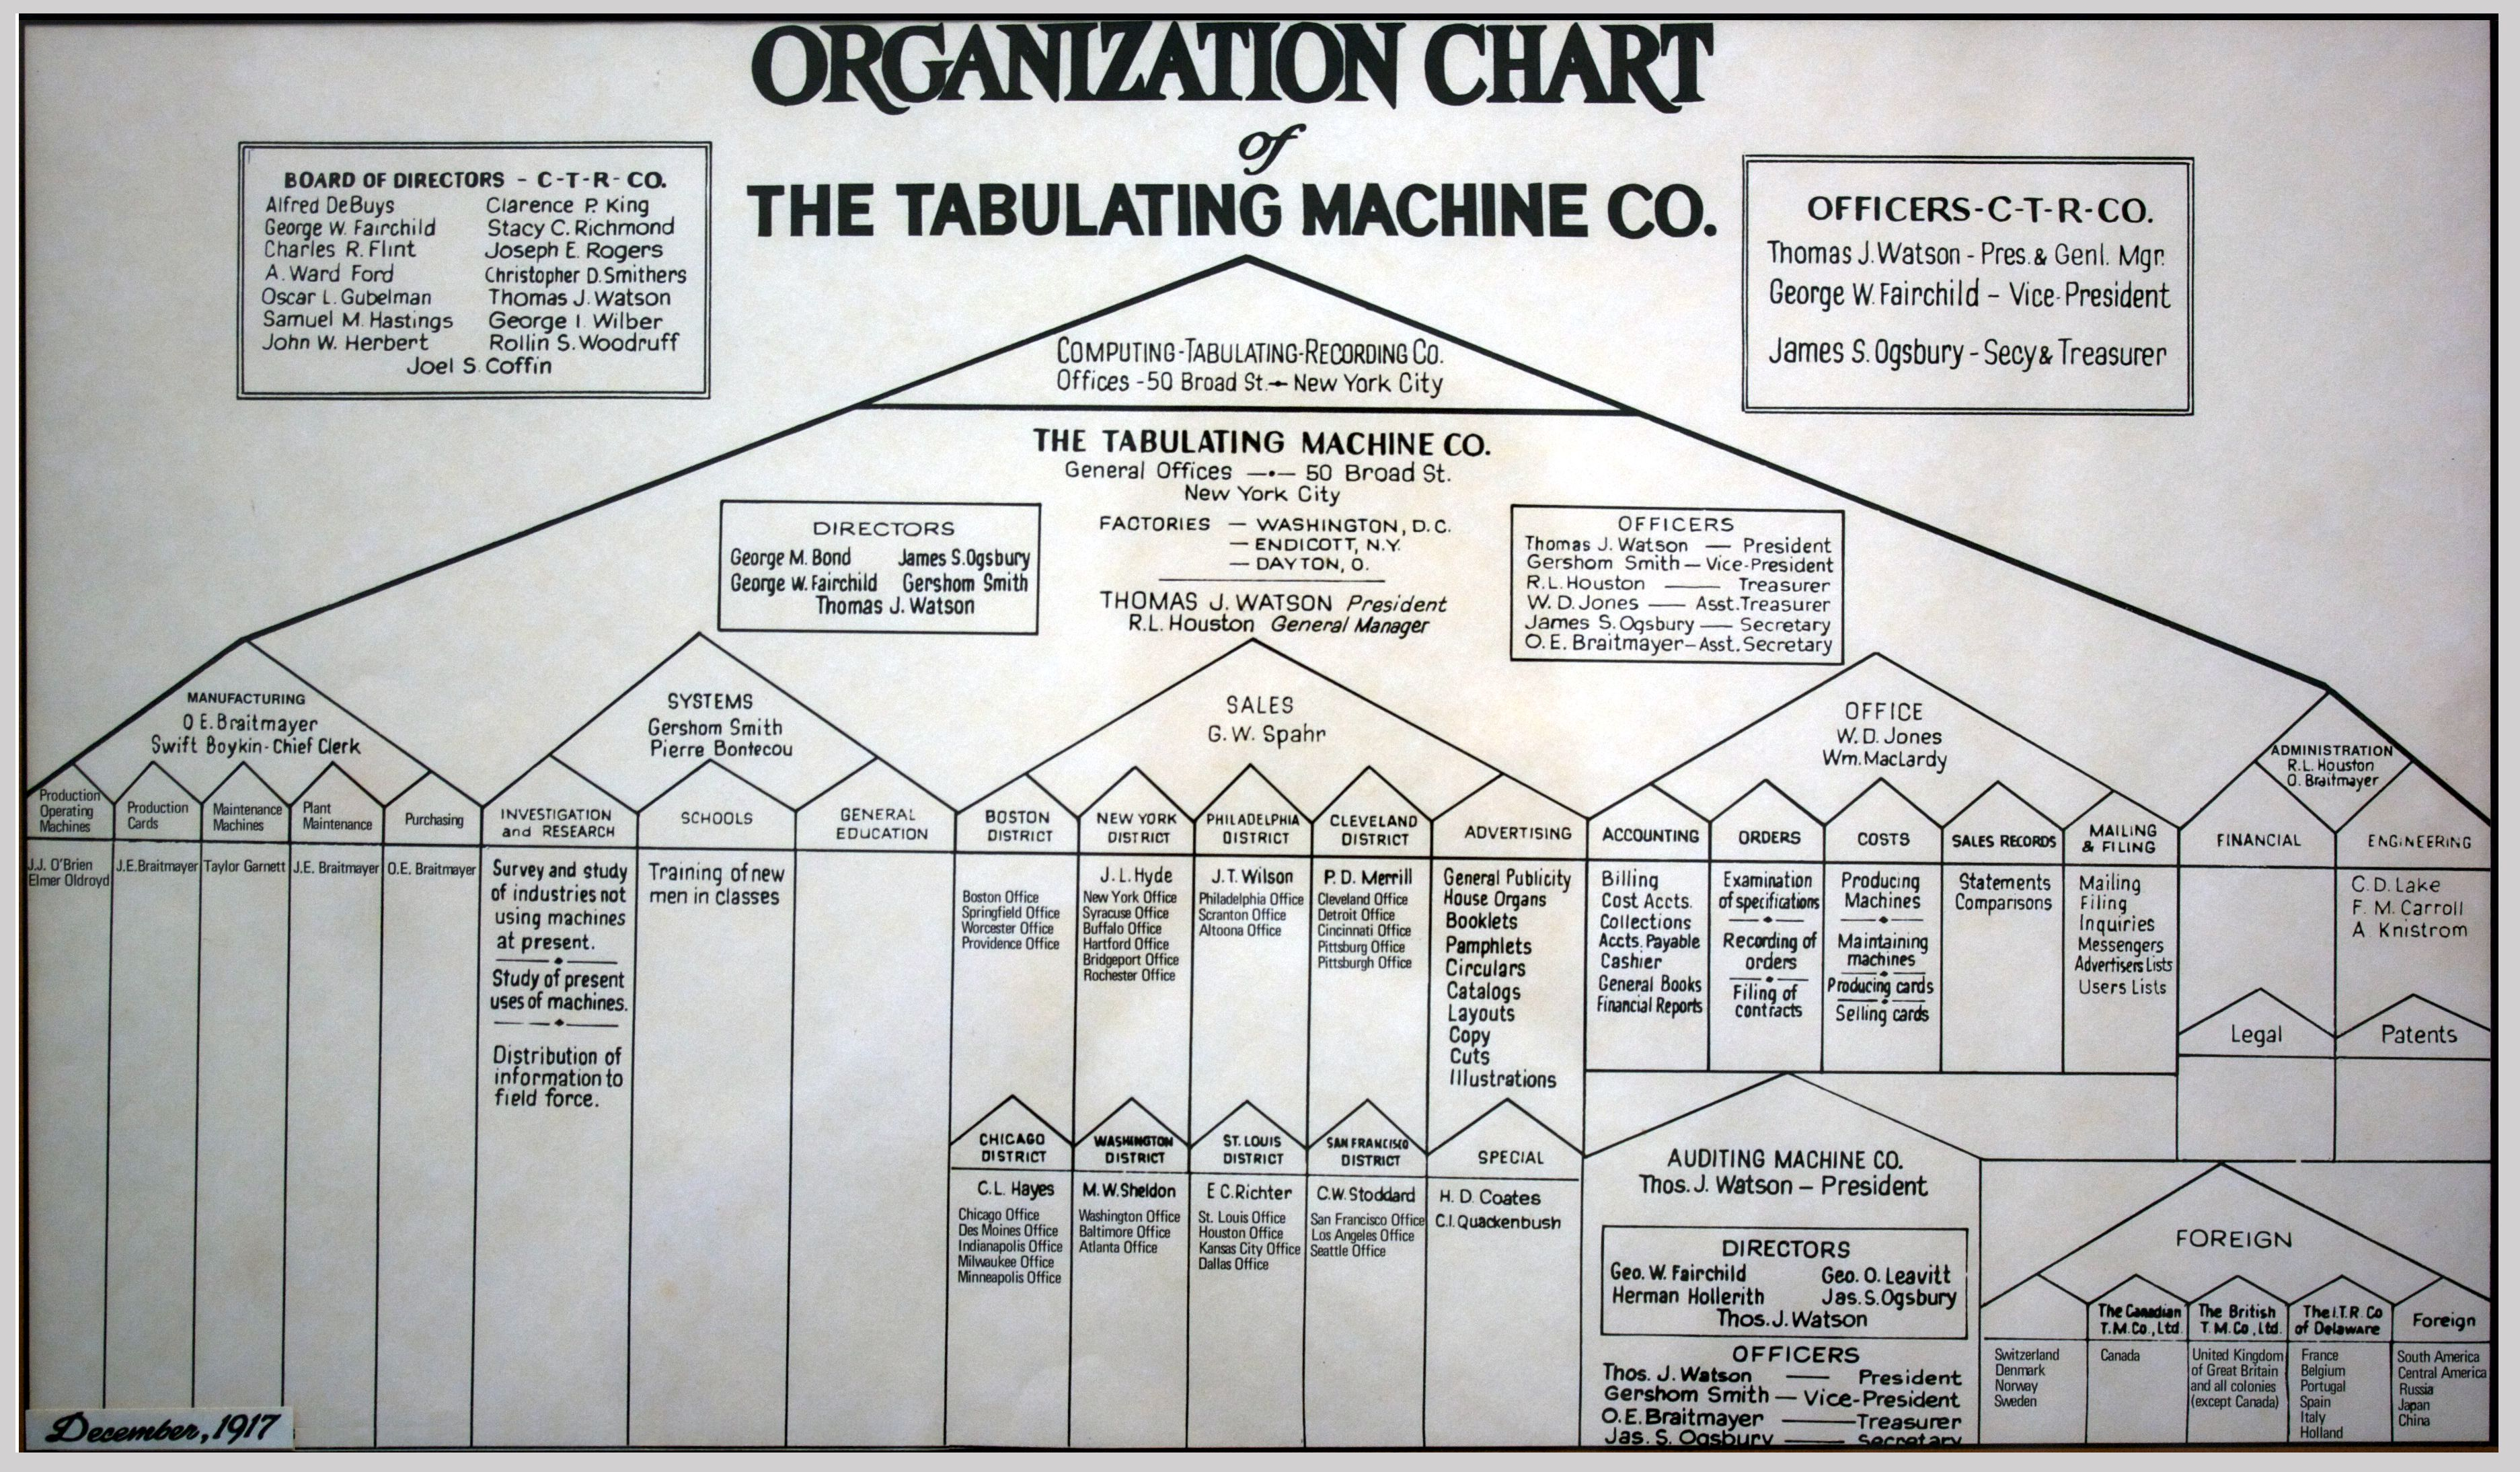 Description tabulating machine co organization chart